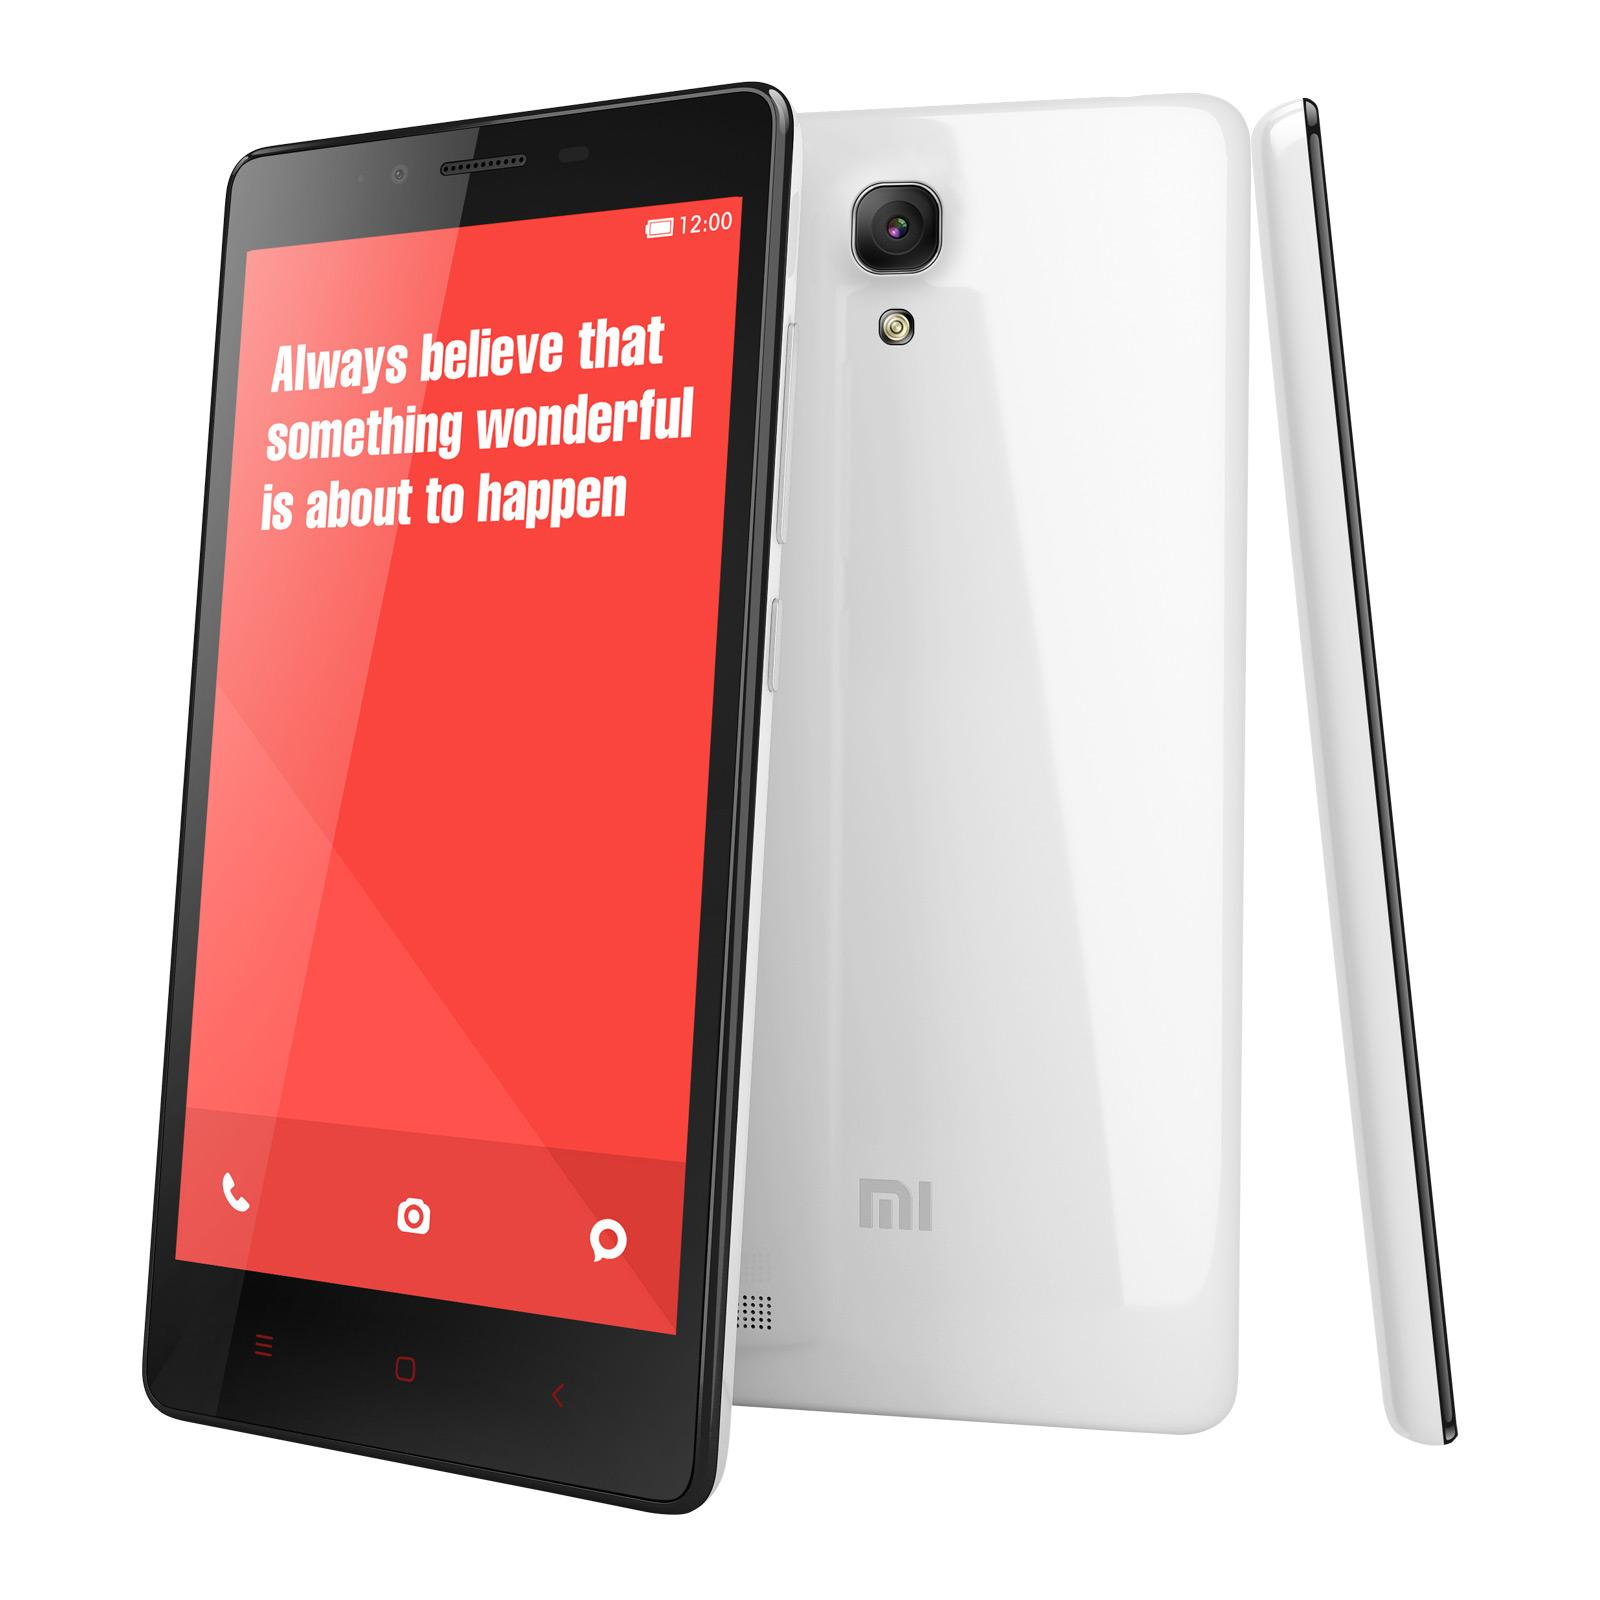 Best Xiaomi Redmi Note 4g Lte Wcdma Android 4 4 5 5 Msm8928 Android Phone 2gb Ram 8gb Original Phone 3g Android Phones Android Mobile Phone Price From